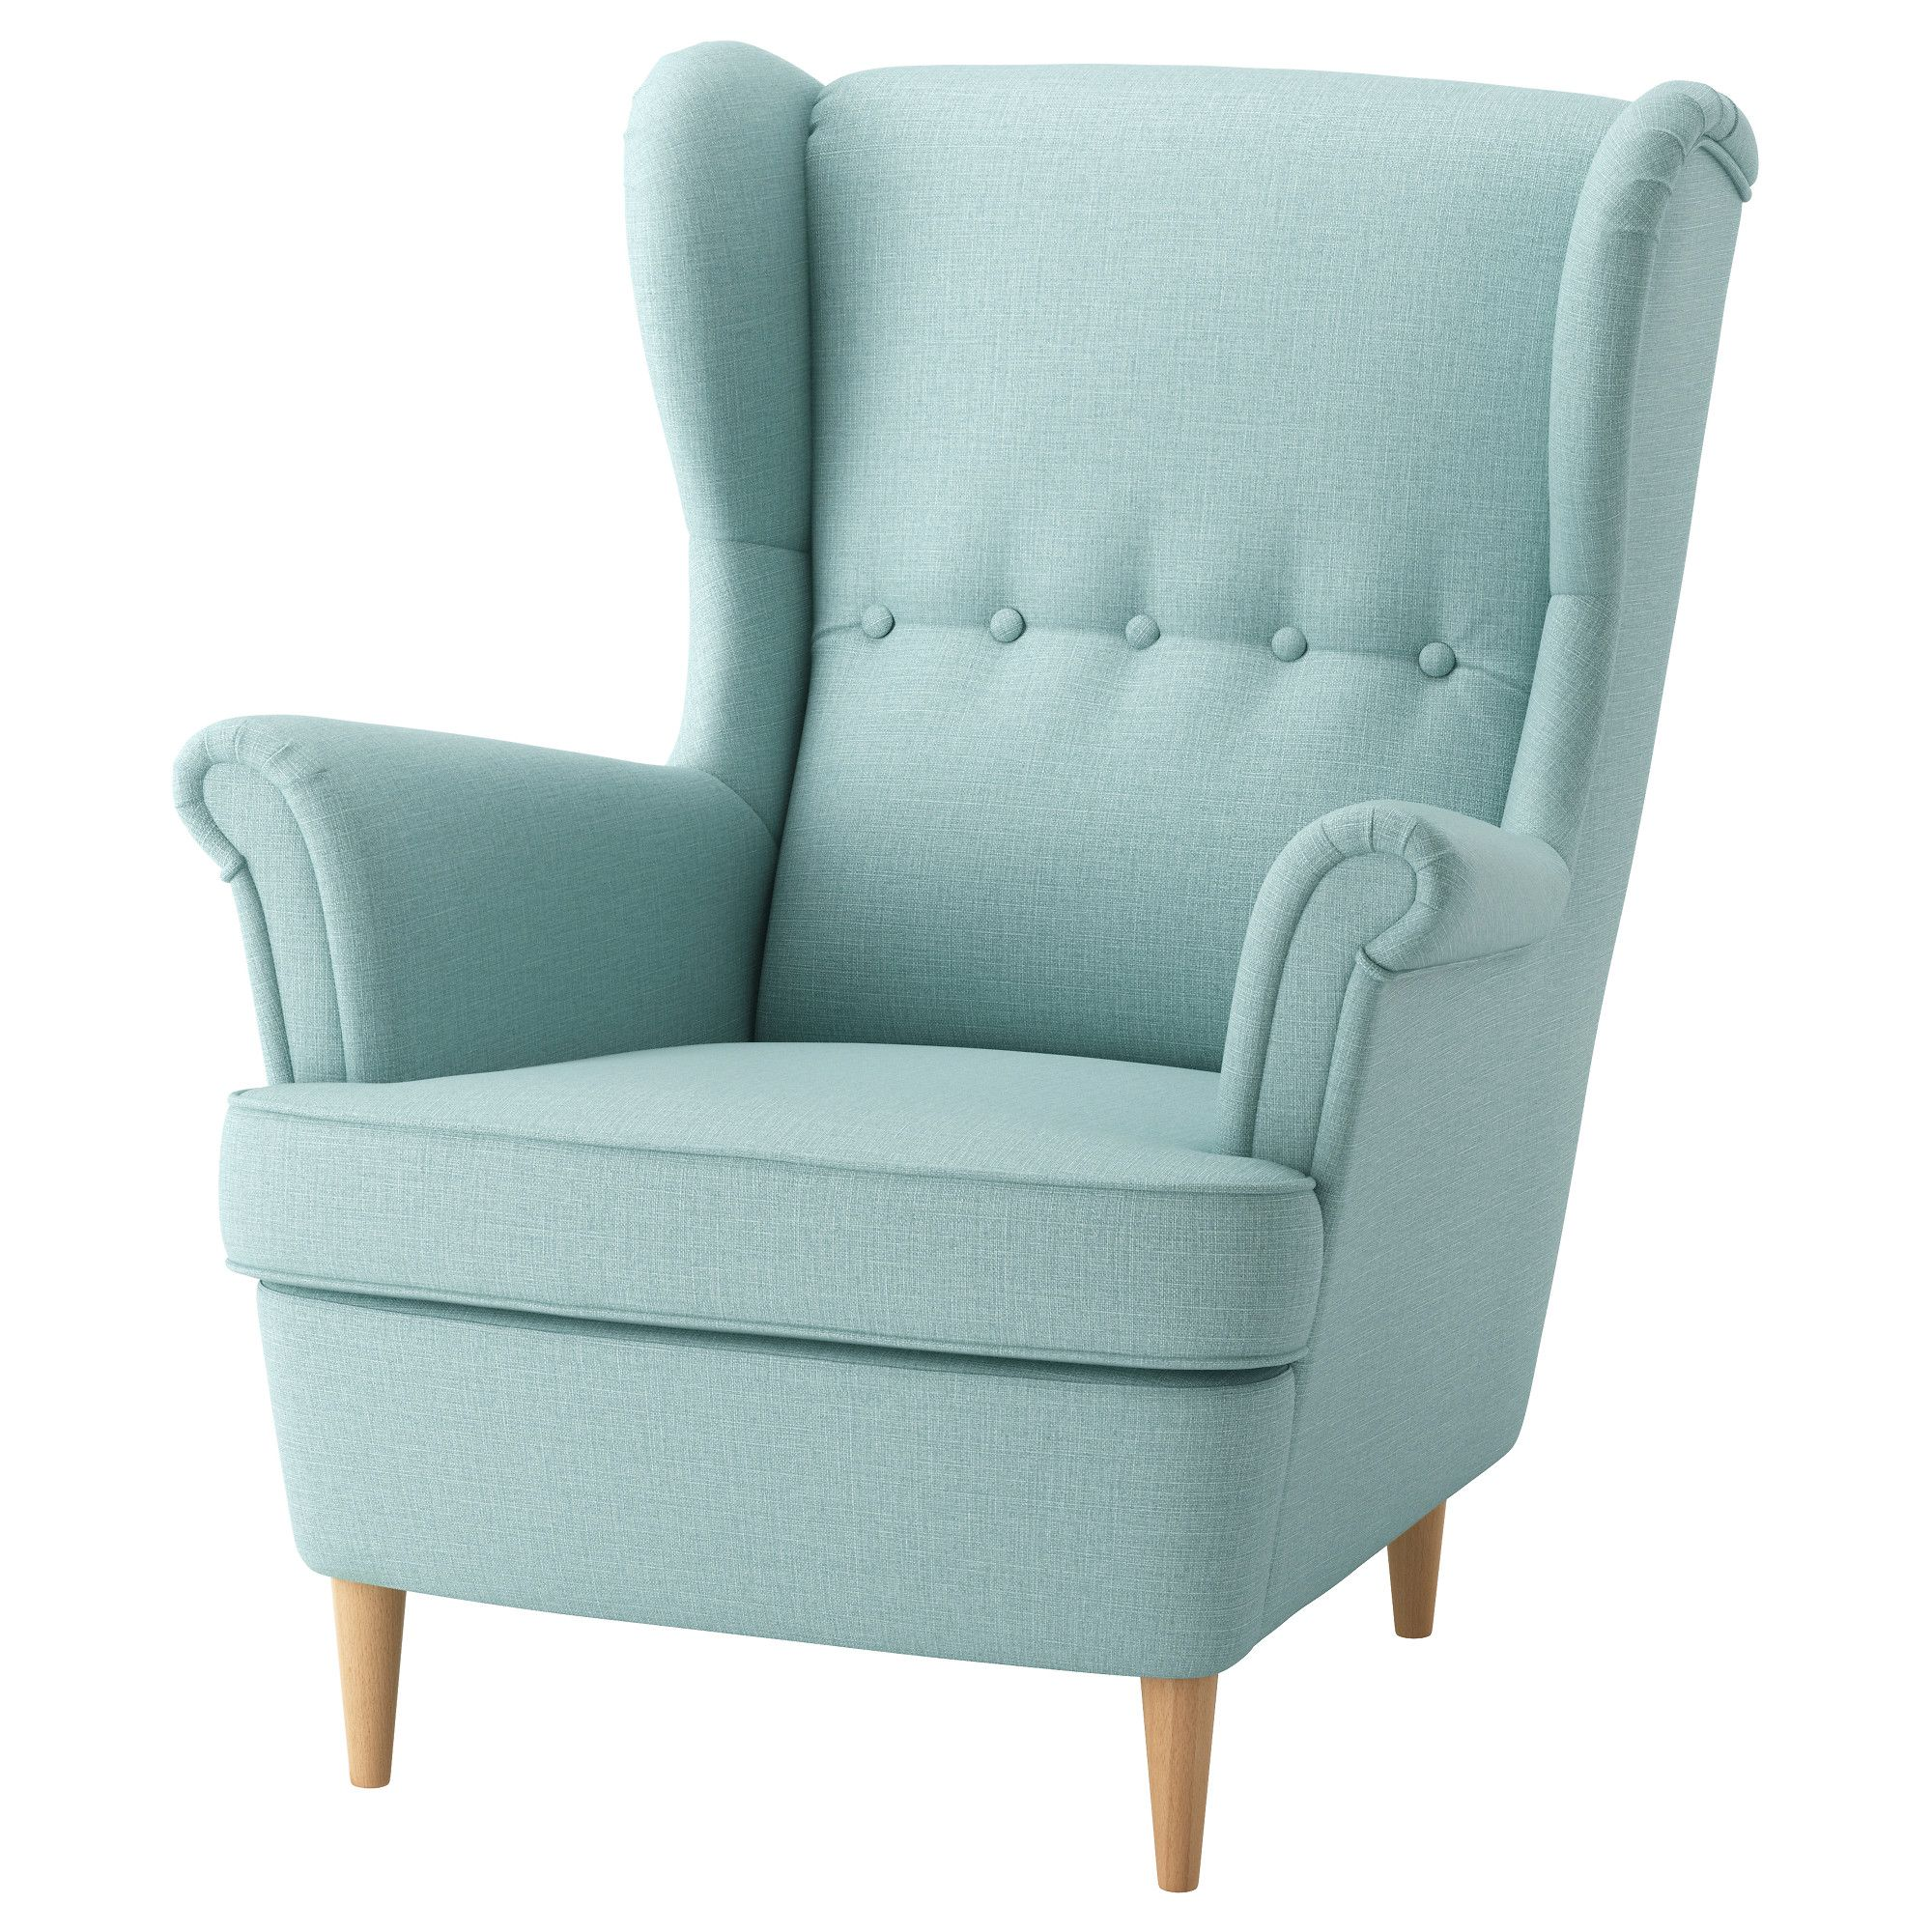 Small Recliner Chairs Ikea